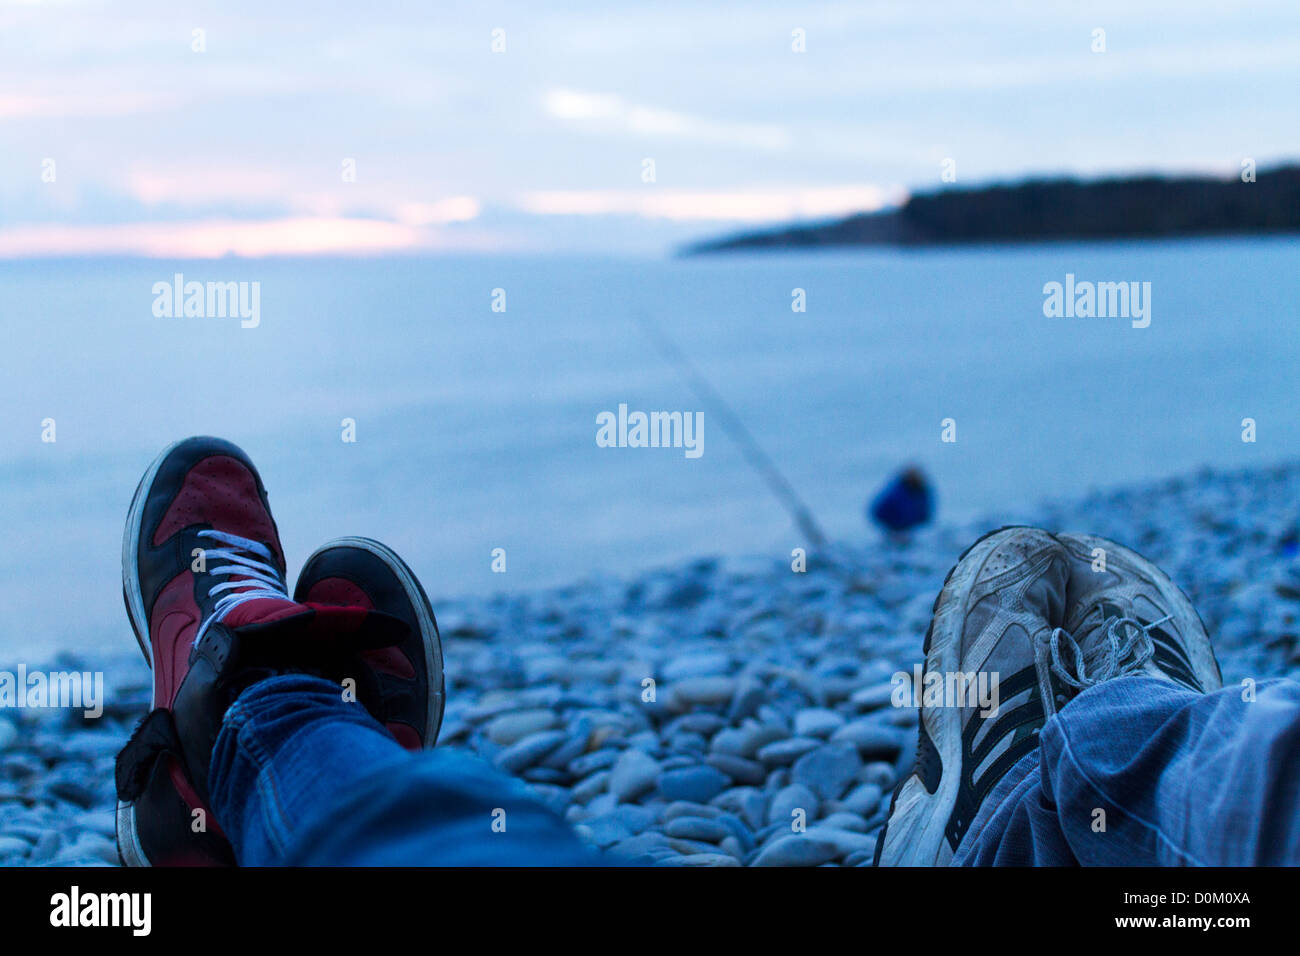 Two pairs of feet and shoes facing out to sea on the beach at sunset on Barry Island. Stock Photo